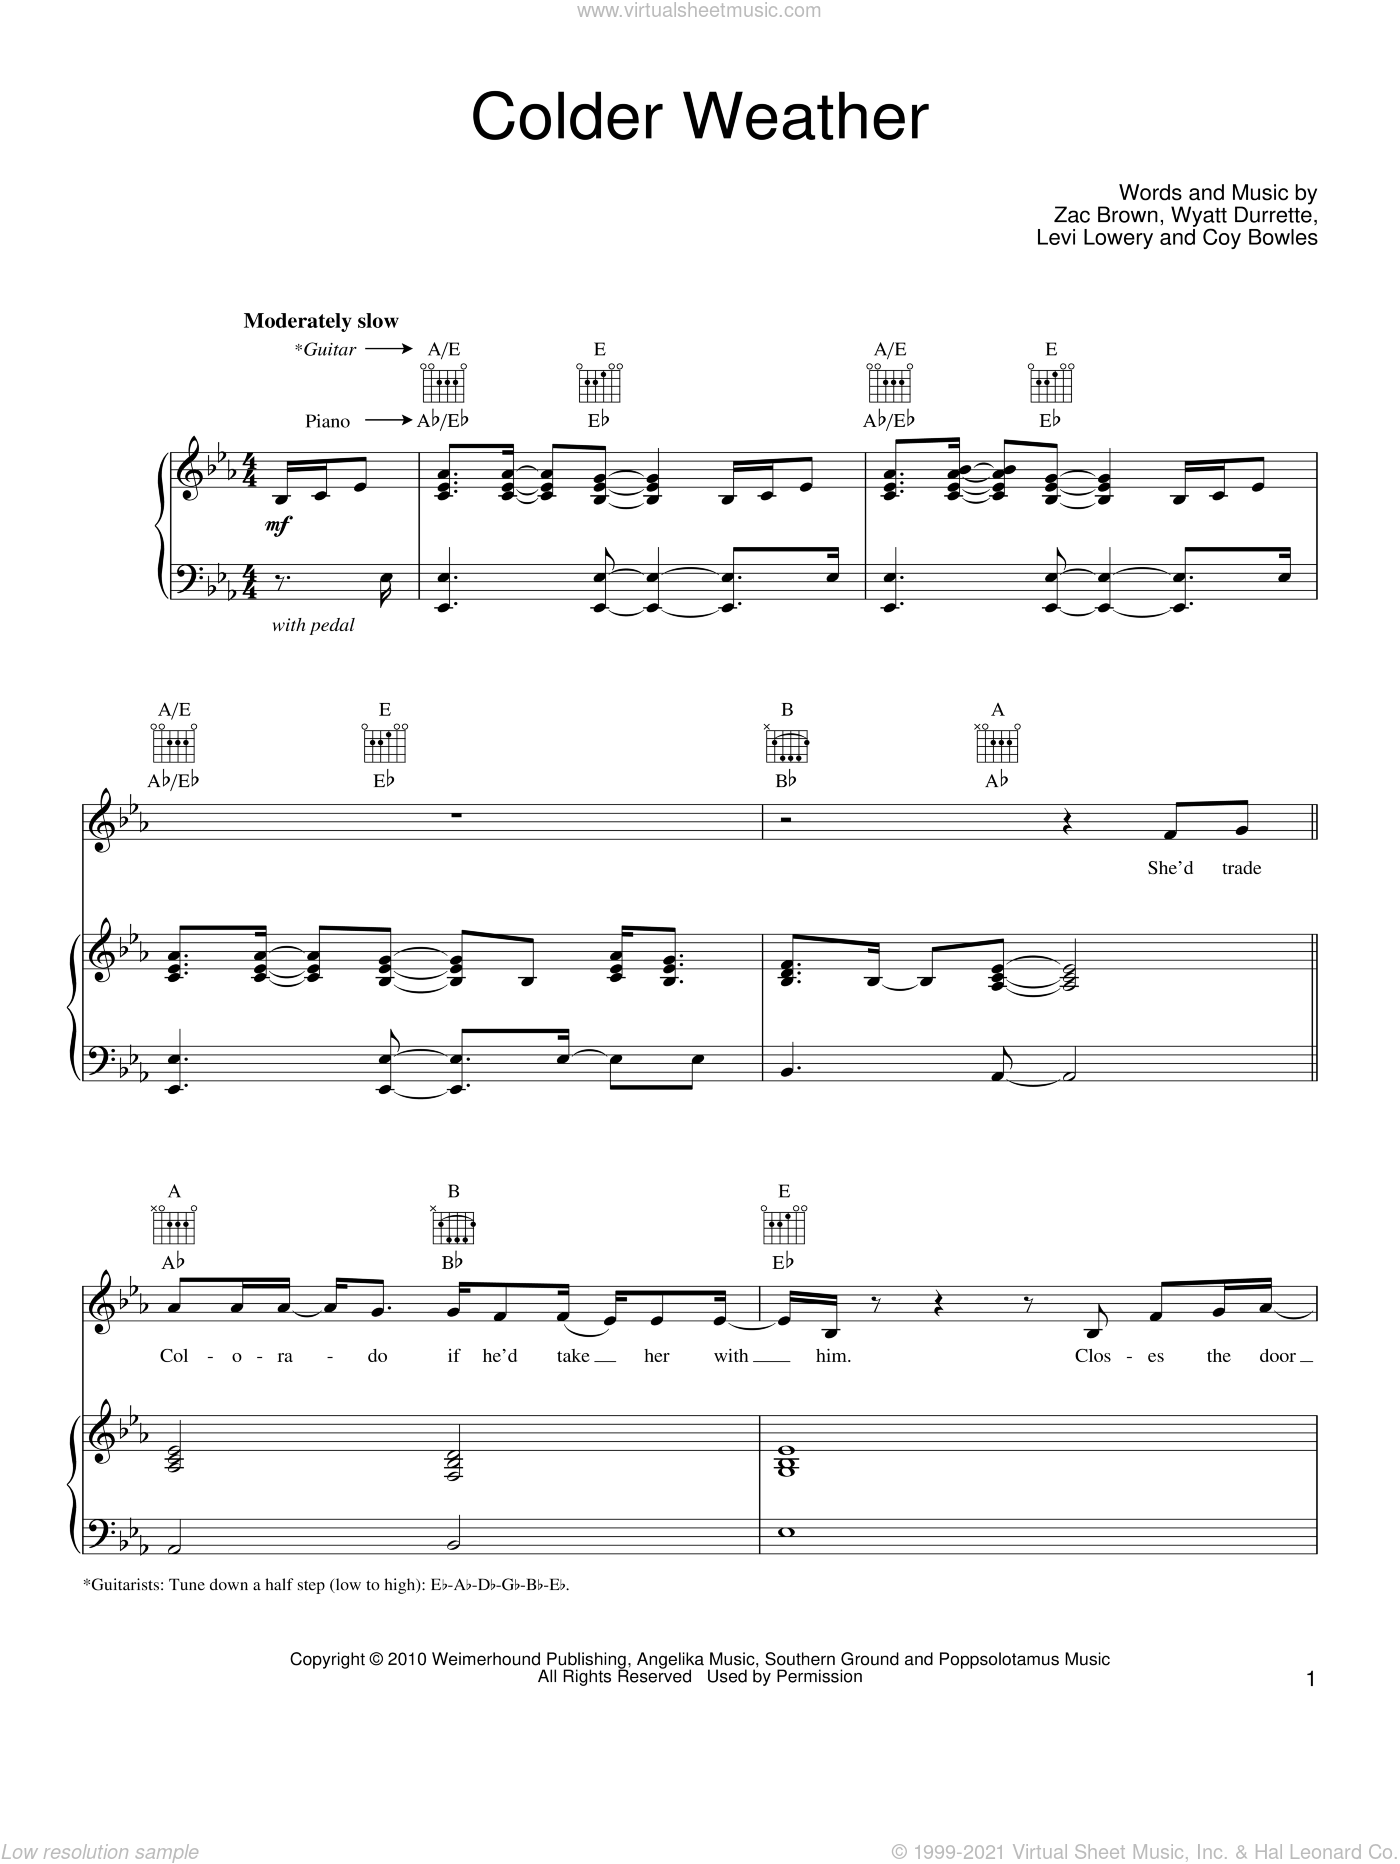 Colder Weather sheet music for voice, piano or guitar by Zac Brown Band, Coy Bowles, Levi Lowery, Wyatt Durrette and Zac Brown, intermediate skill level